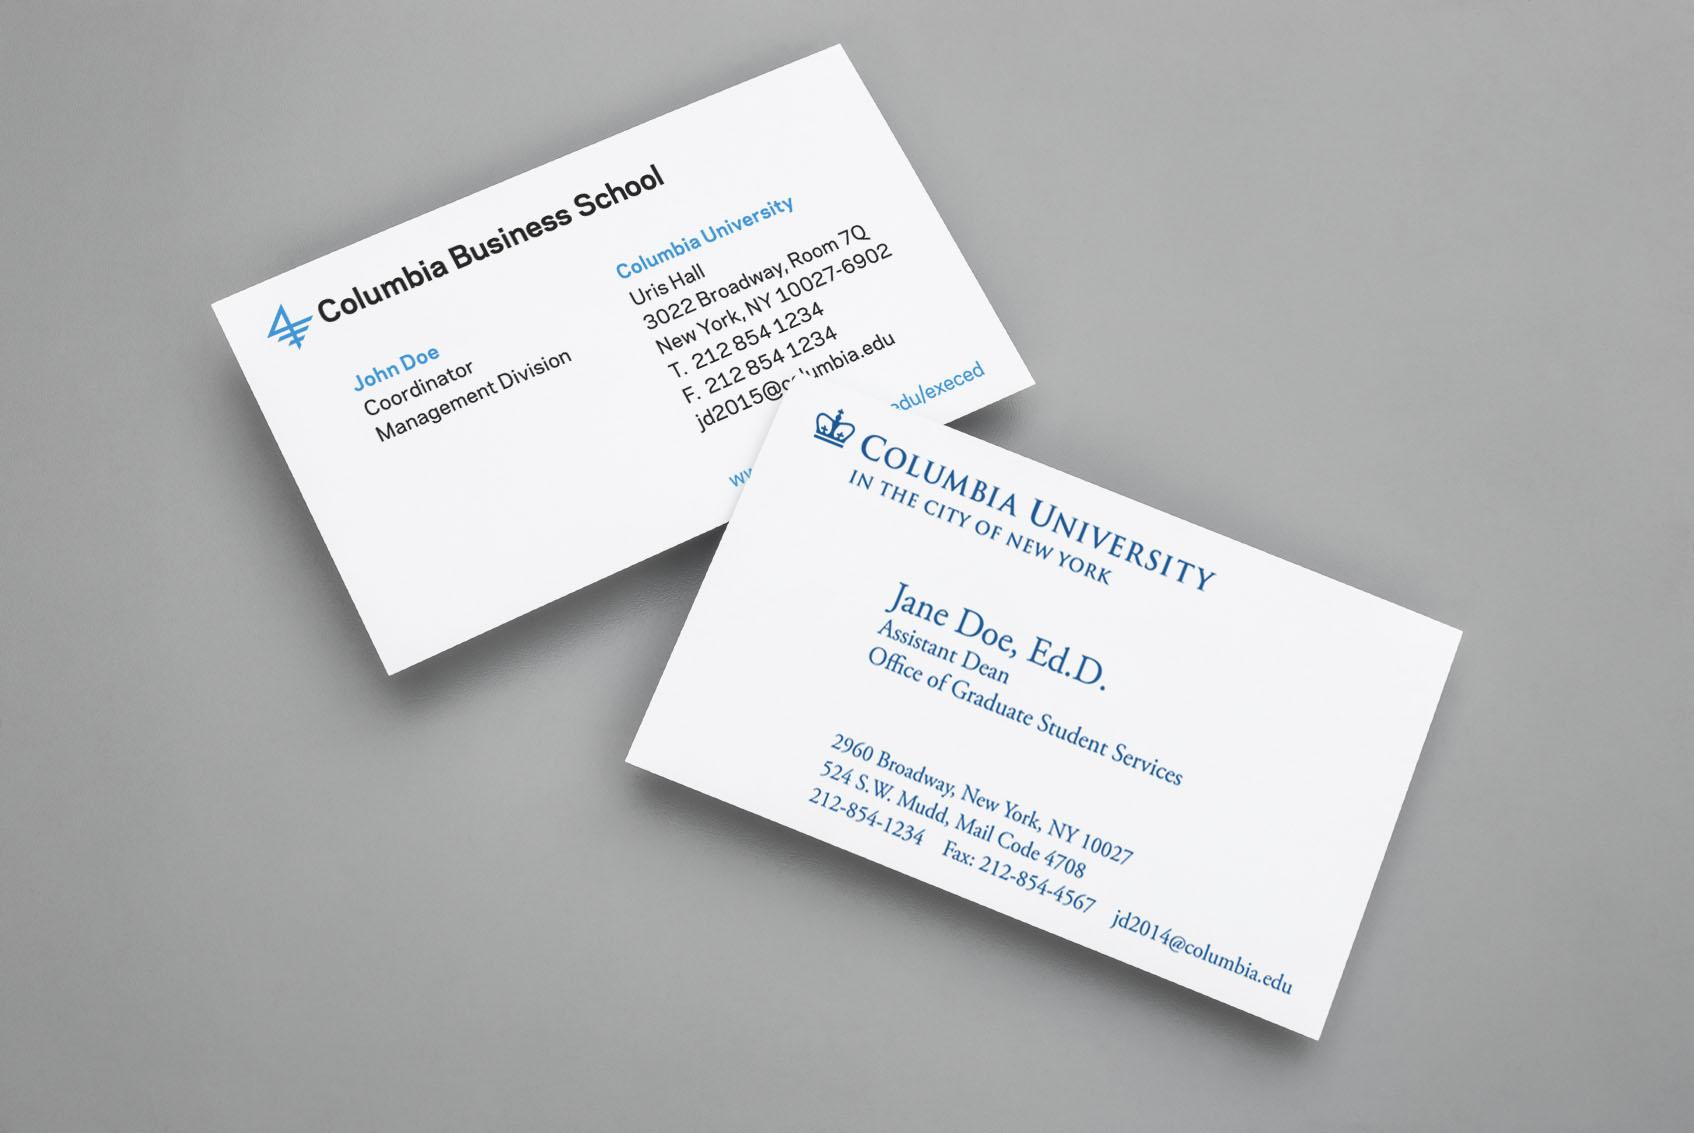 business cards columbia print